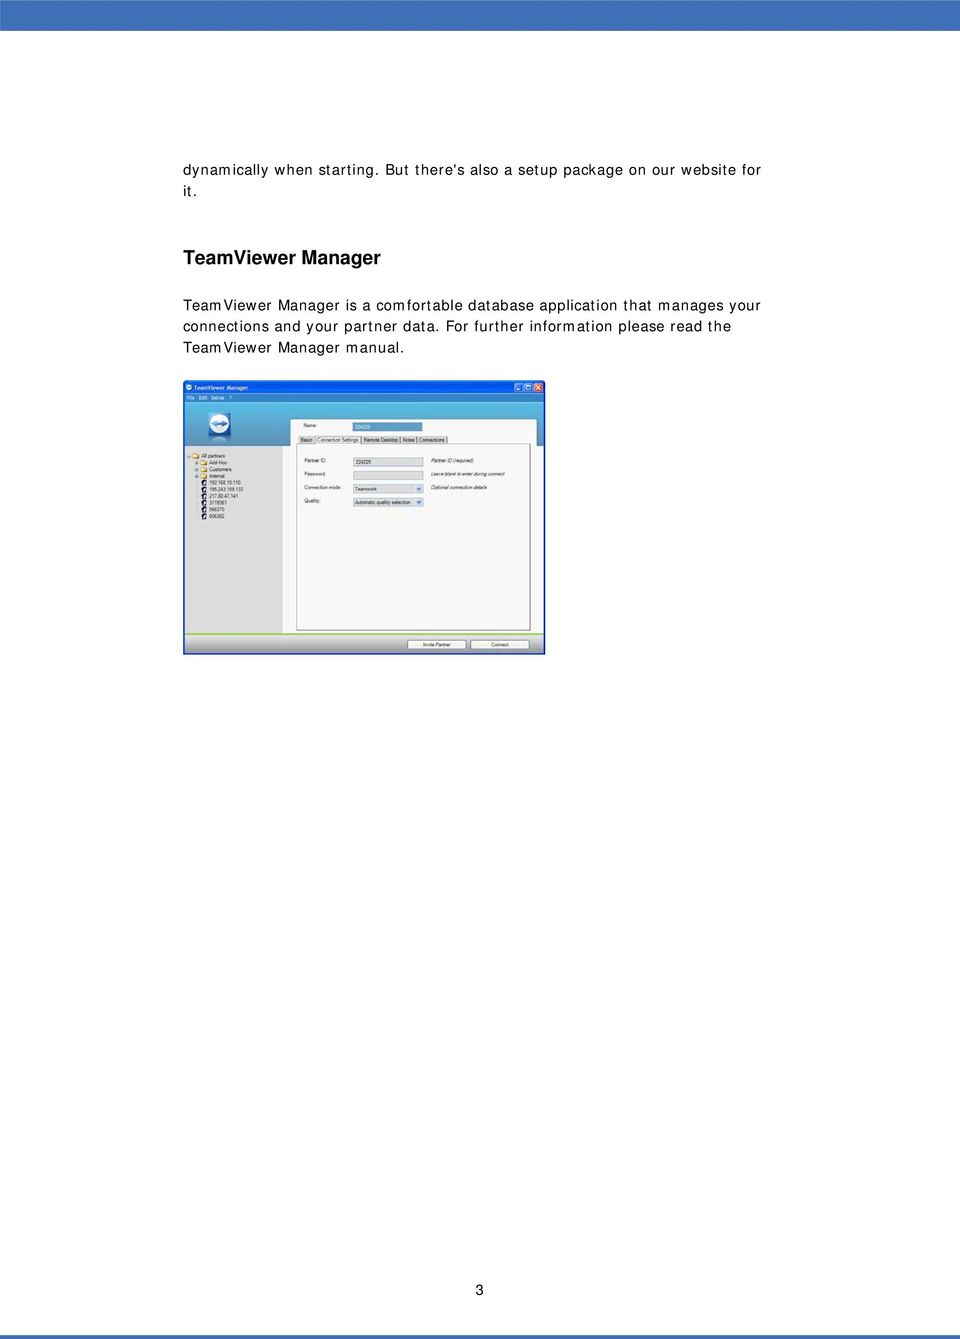 TeamViewer Manager TeamViewer Manager is a comfortable database